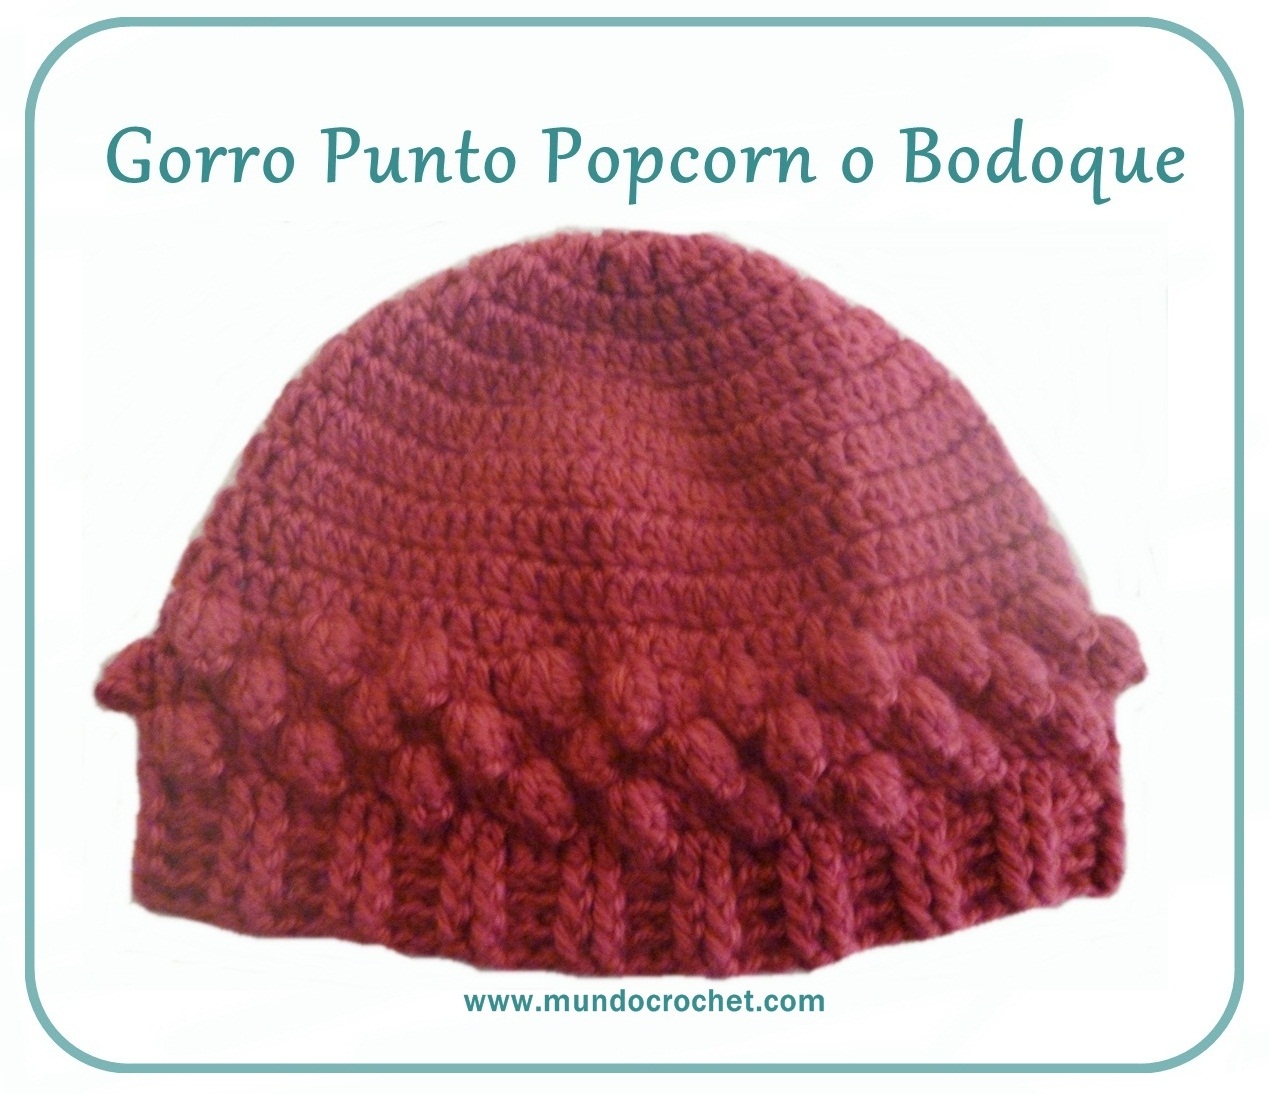 Gorros Archives - Mundo Crochet